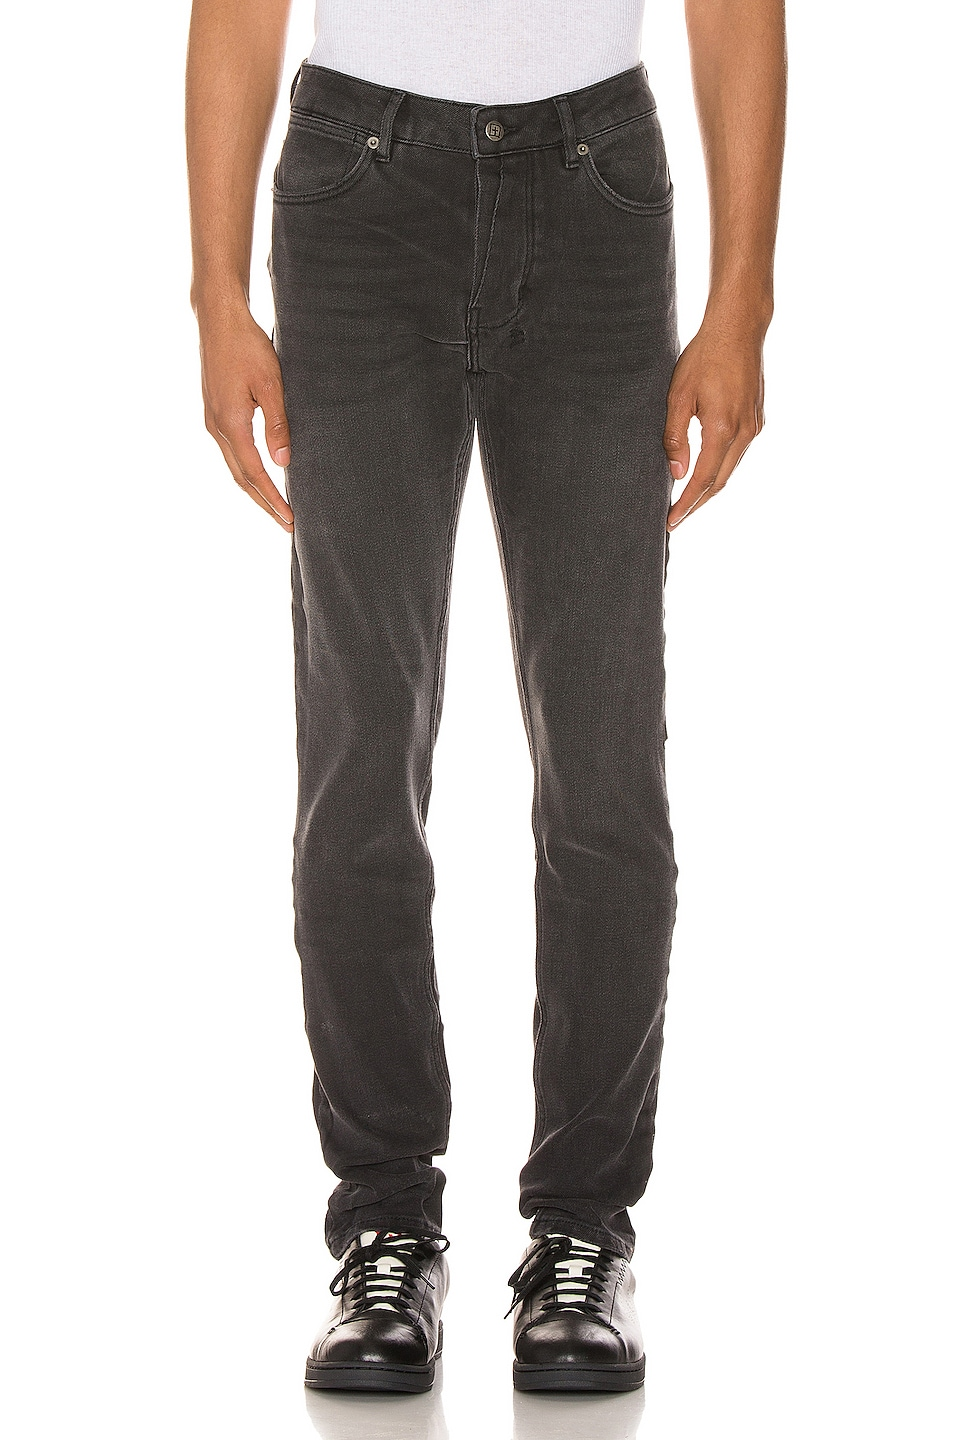 Image 1 of Ksubi Van Winkle Surge Jean in Denim